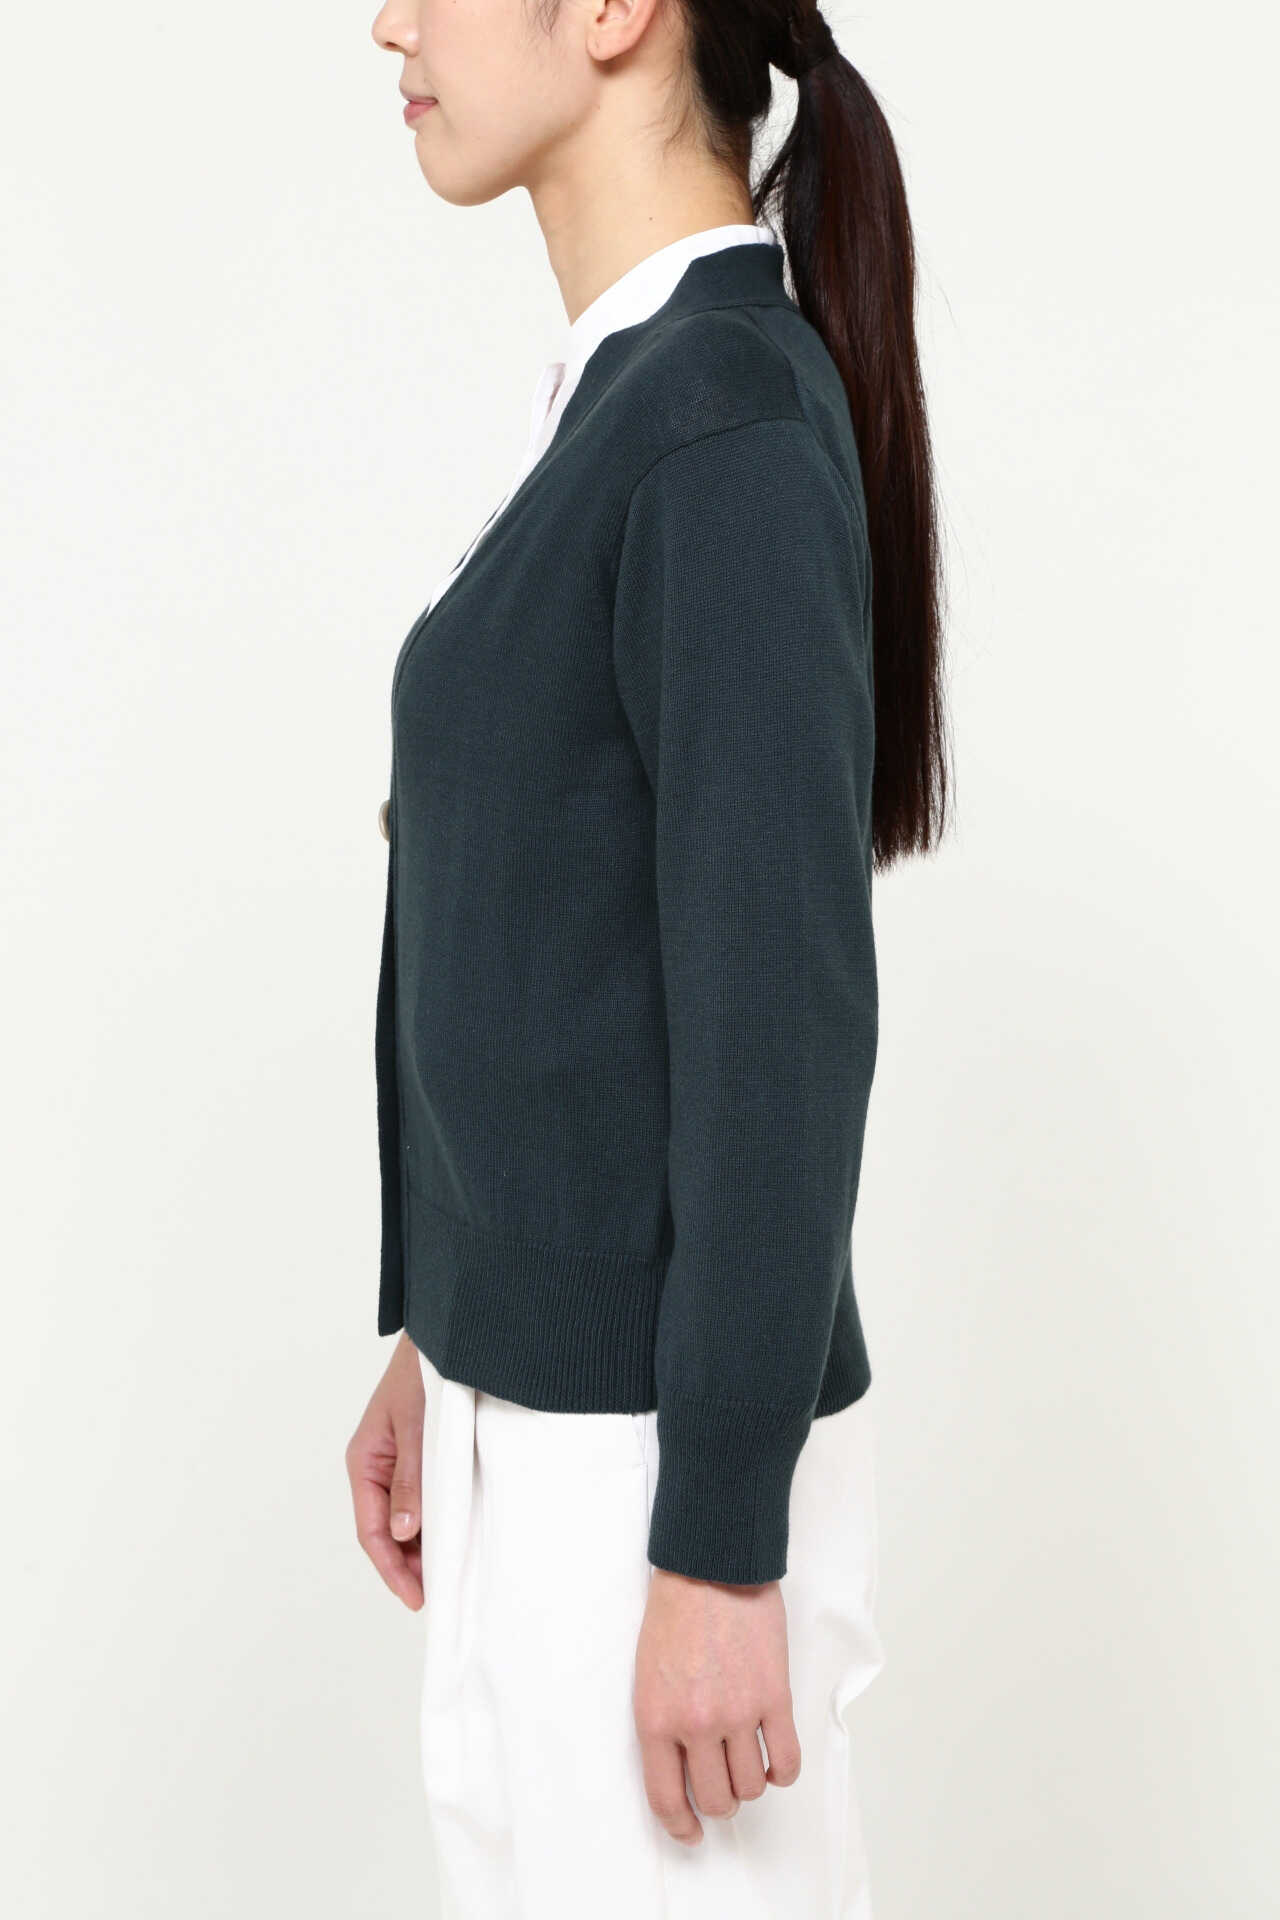 COTTON CASHMERE V NECK CARDIGAN12